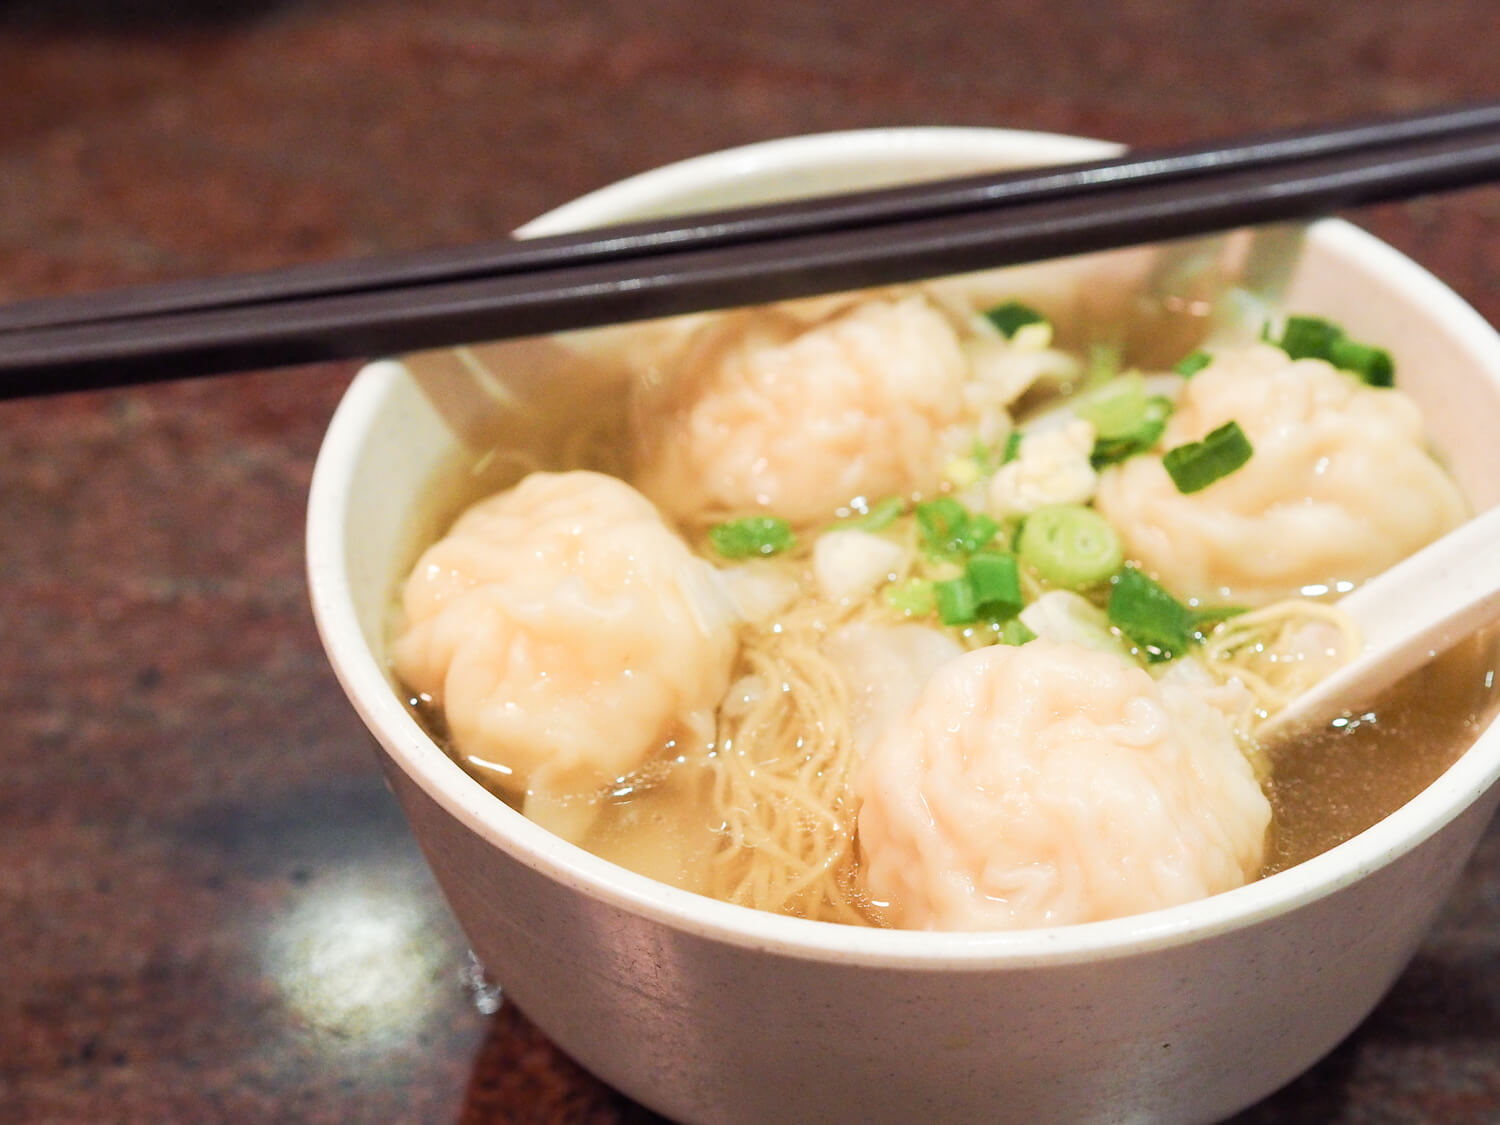 Traditional wanton noodles are a must-try when visiting Hong Kong